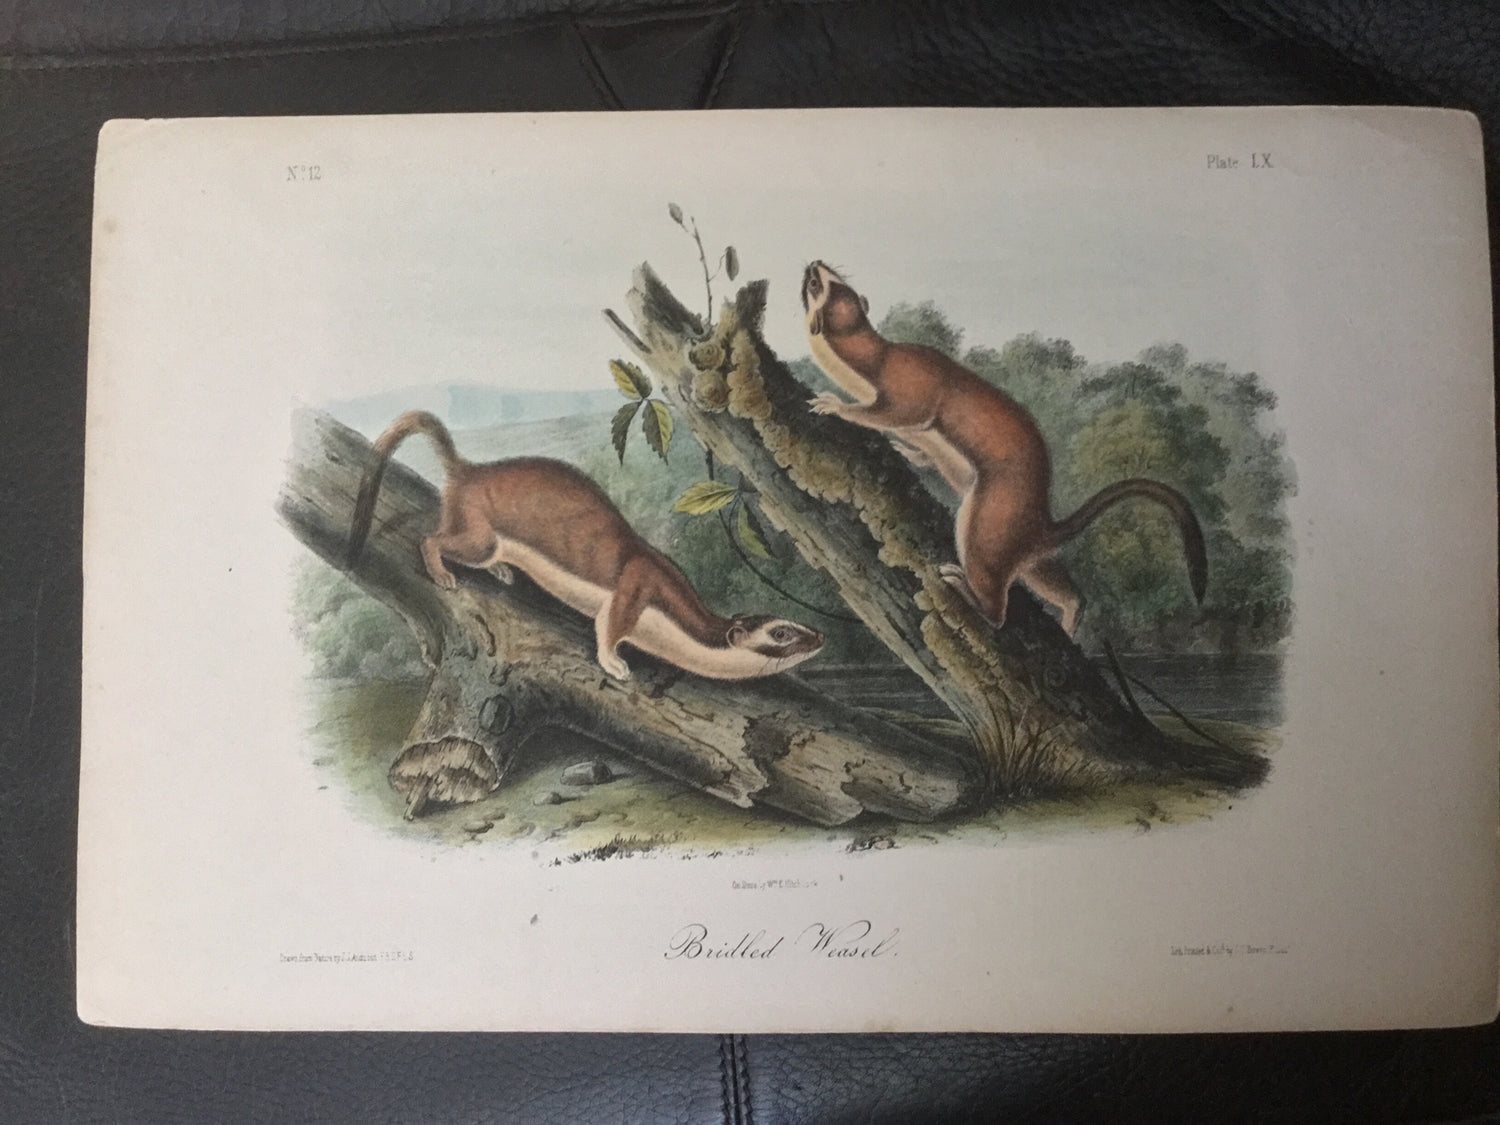 Lord-Hopkins Collection - Bridled Weasel, shop notes on back